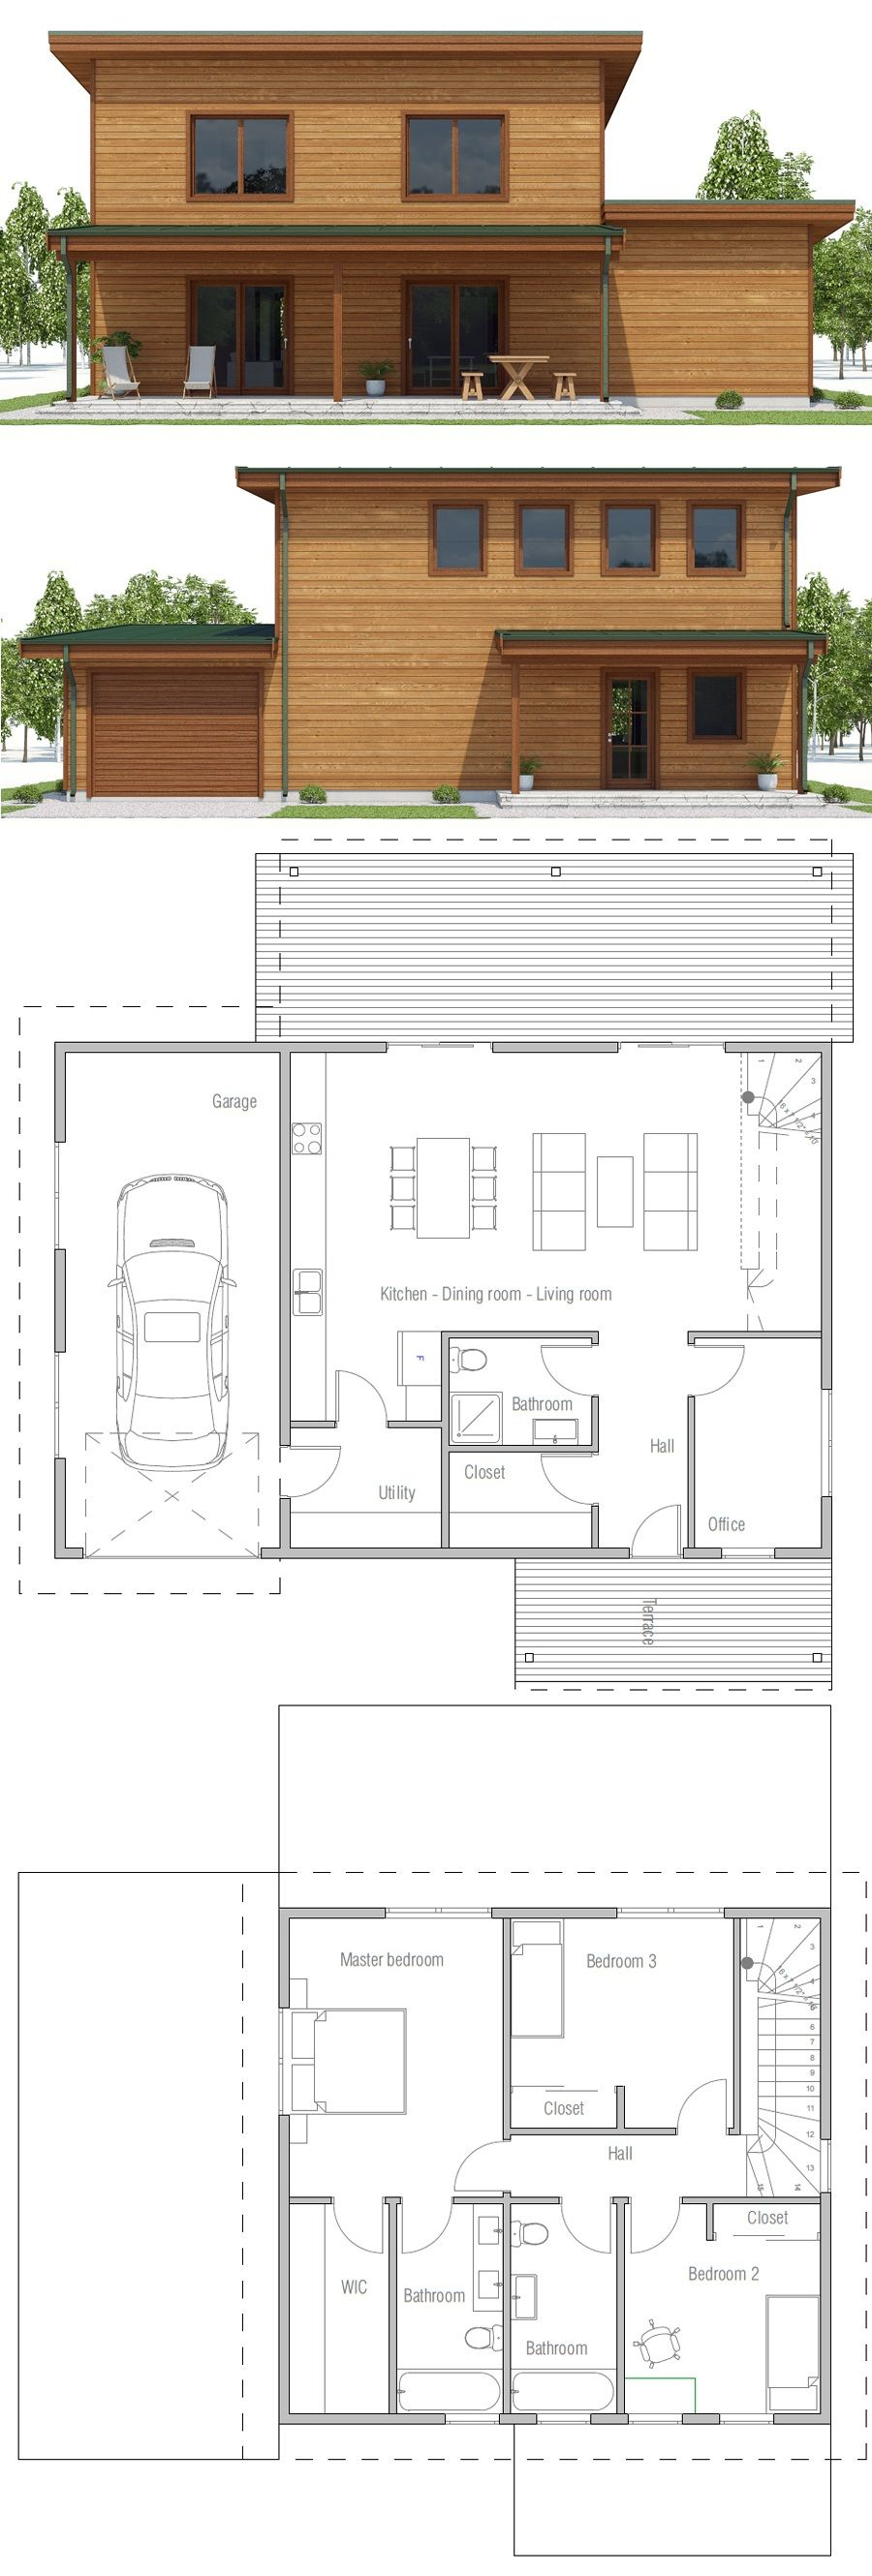 Affordable House Plan Small House Plan Home Plan Affordable House Plans Affordable House Design Small House Architecture